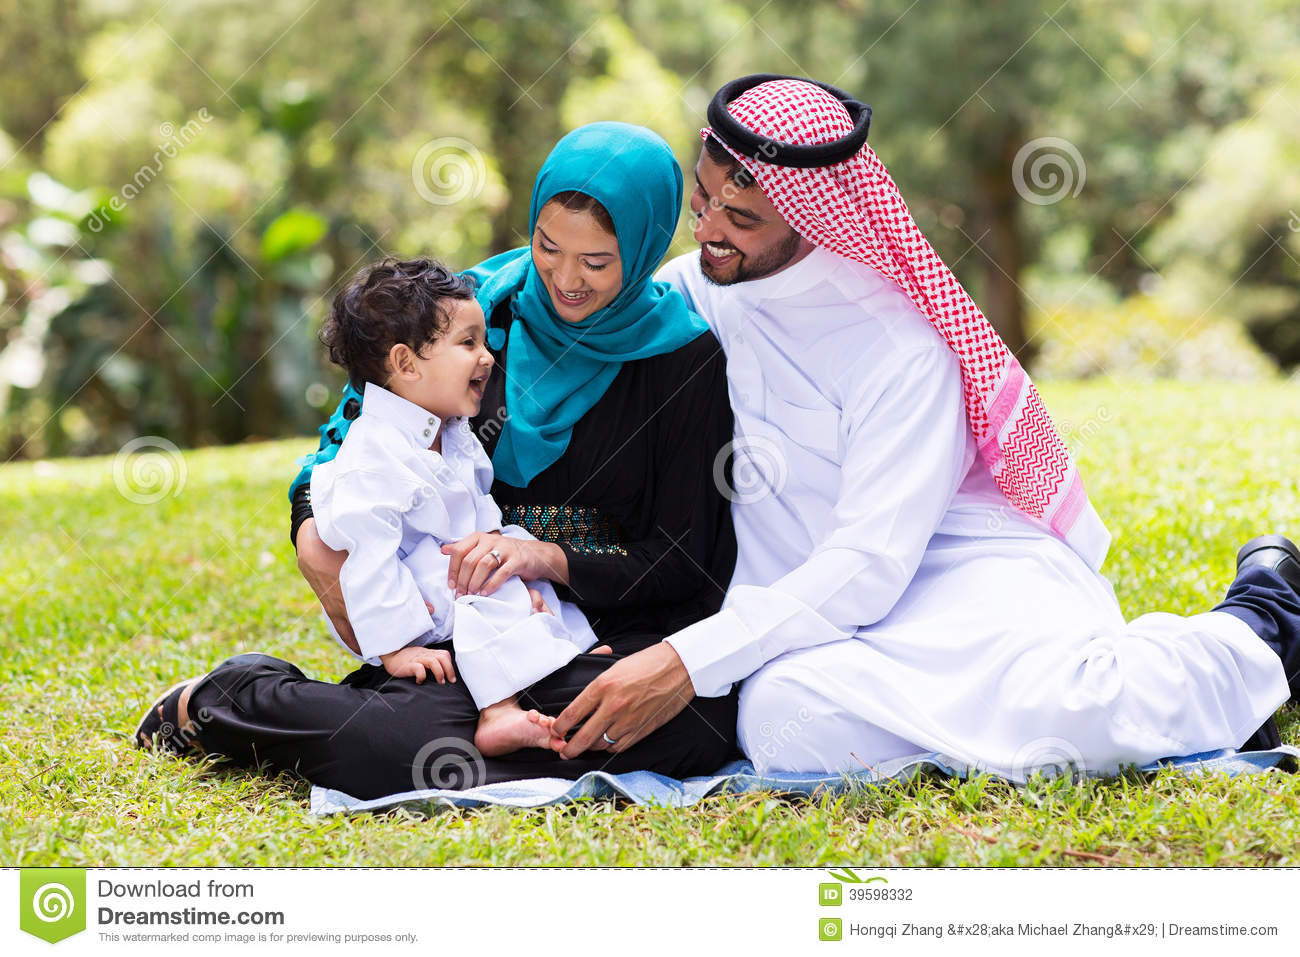 Muslim Family Outdoors Stock Photo - Image: 39598332